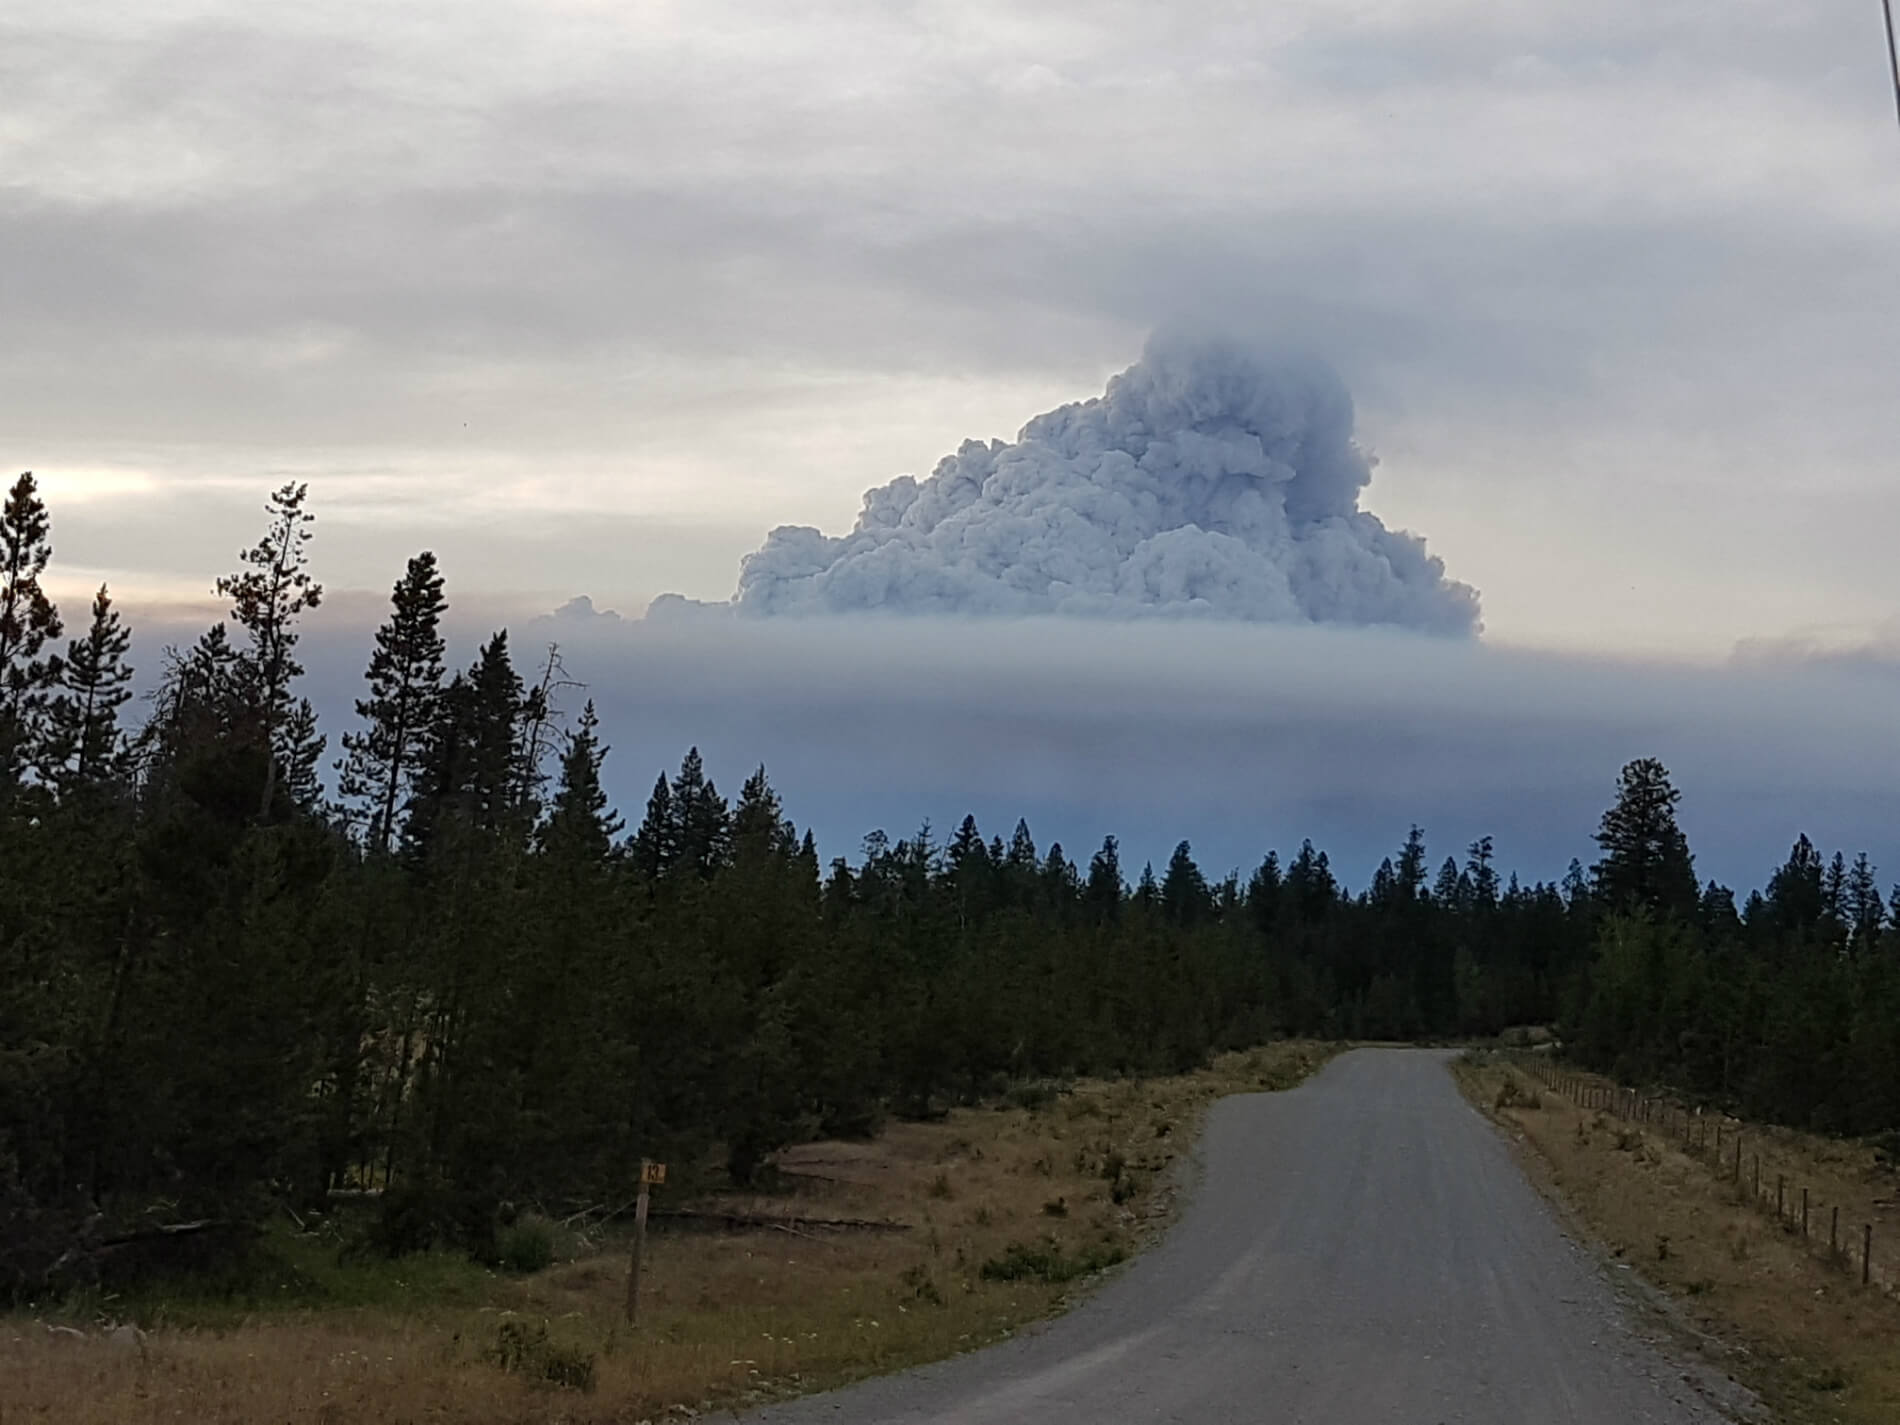 Smoke plumes from wildfires rise above the Tsilhqot'in territory